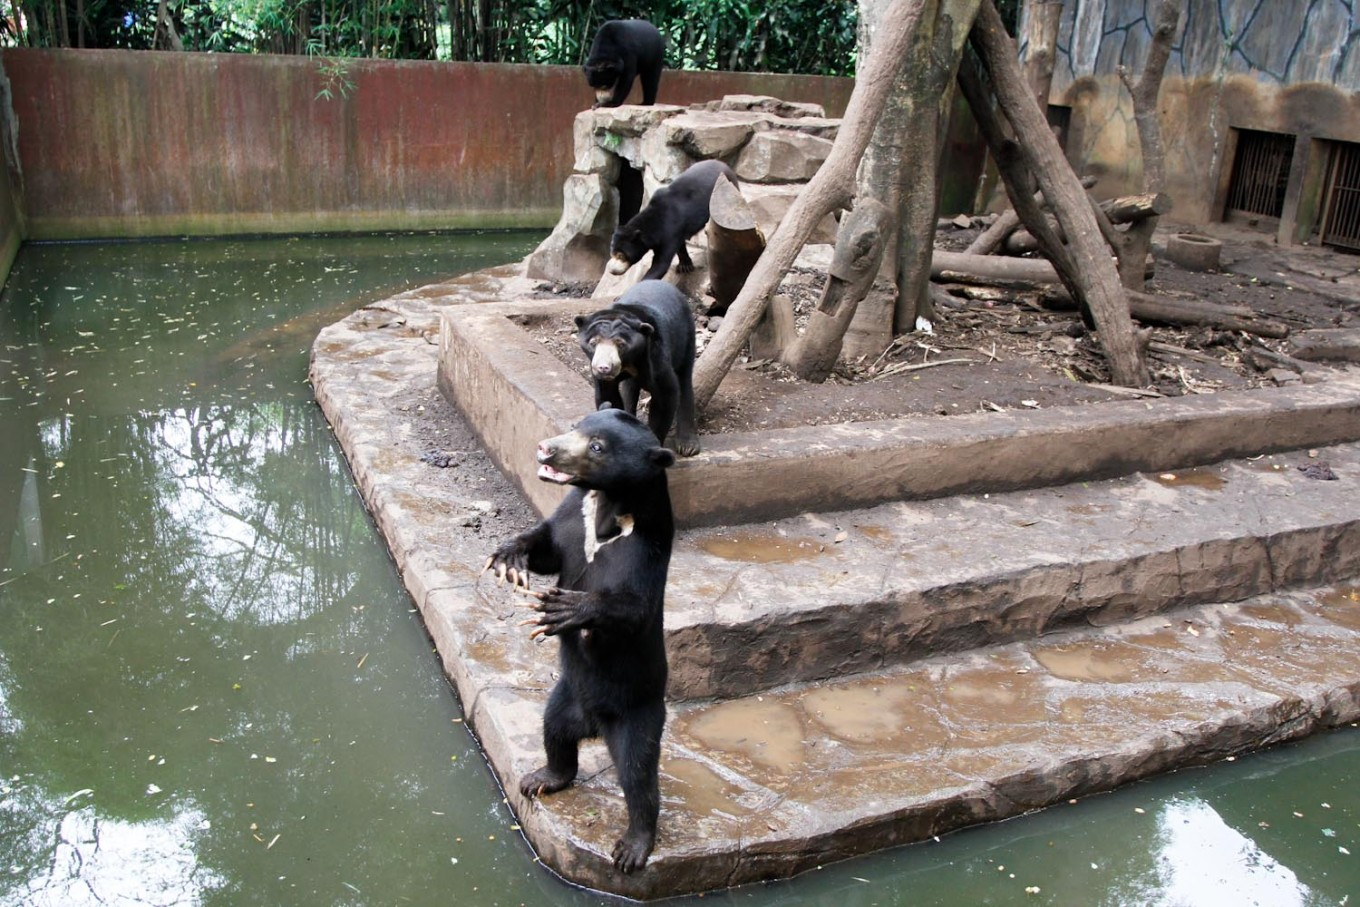 Zoo defends conditions following video of sun bears begging for food